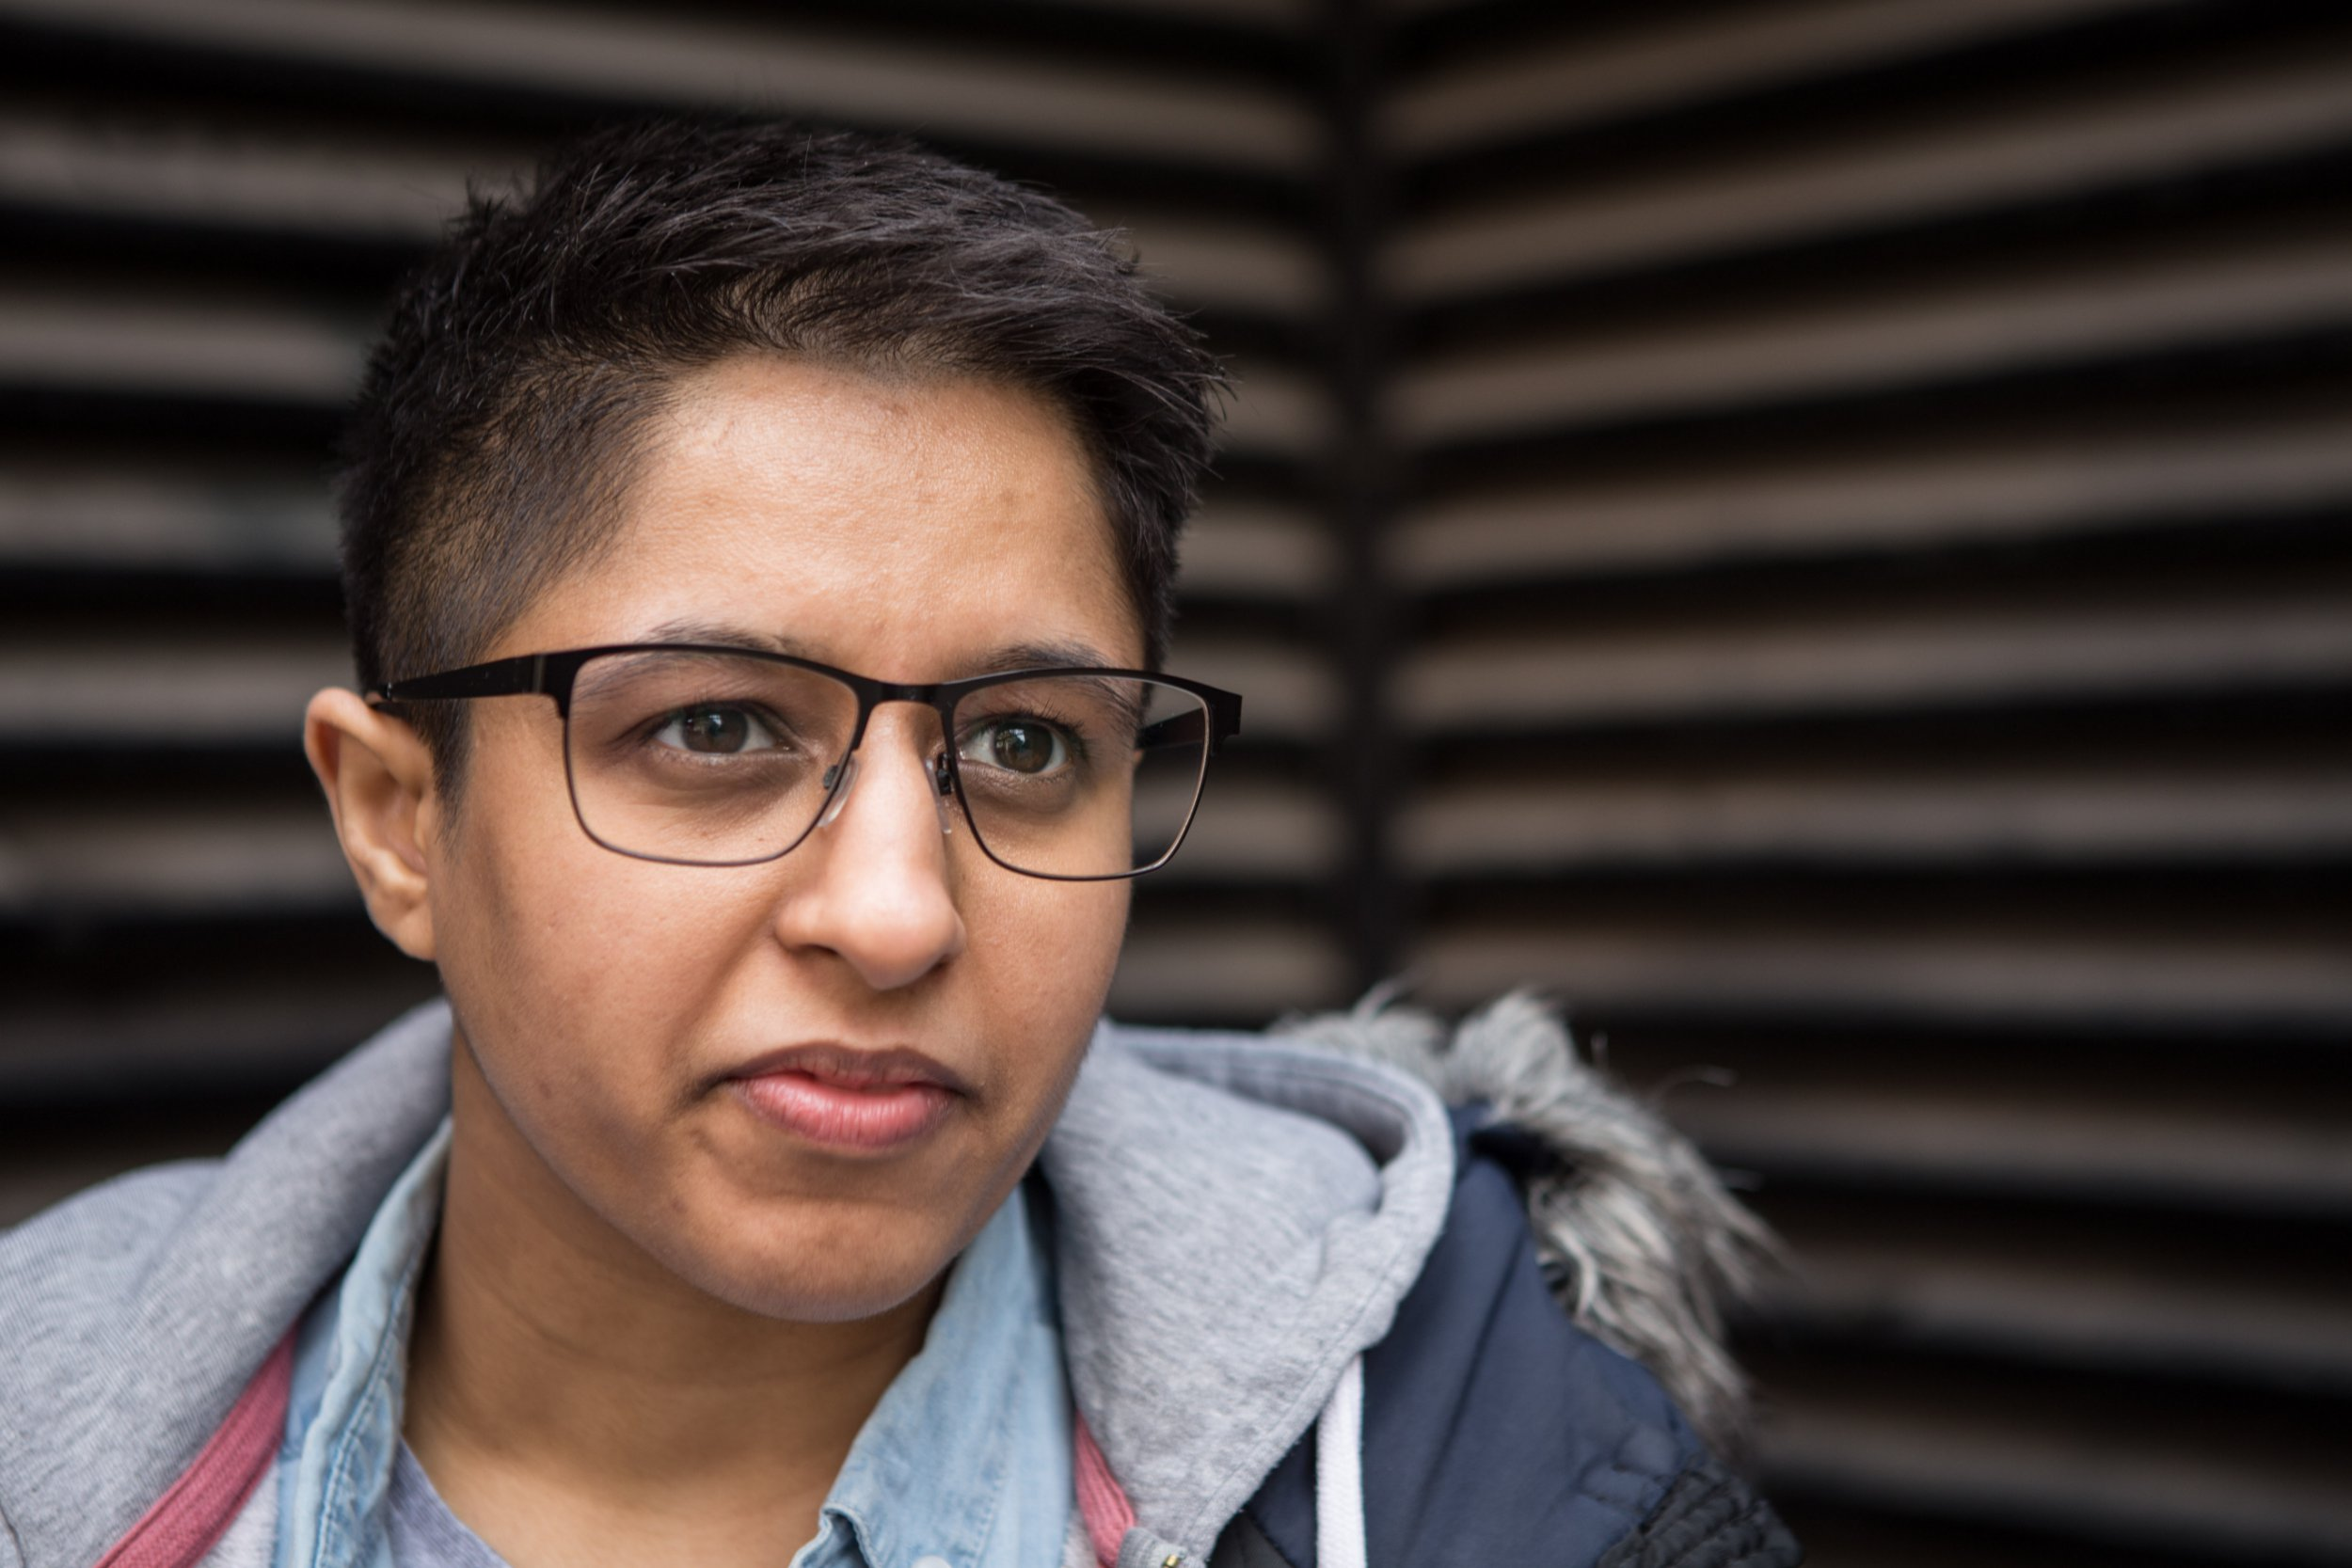 Picture: Centrepoint (Supplied) Trans homeless man had to leave home to escape forced marriage Trans homeless man had to leave home to escape forced marriage